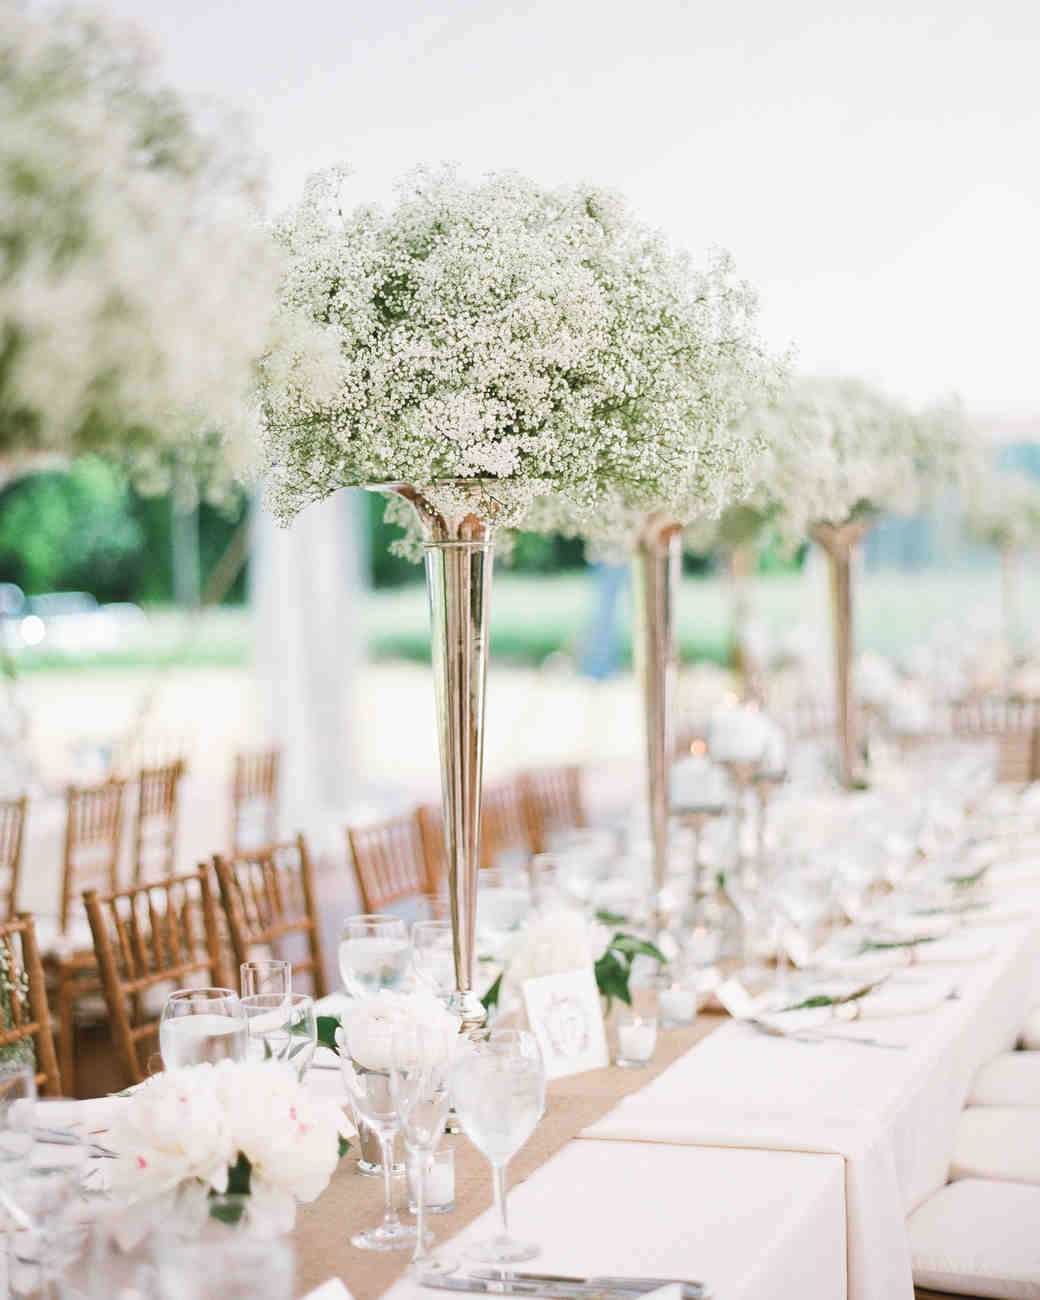 Affordable Wedding Centerpieces That Still Look Elevated | Martha Stewart Weddings & Affordable Wedding Centerpieces That Still Look Elevated | Martha ...